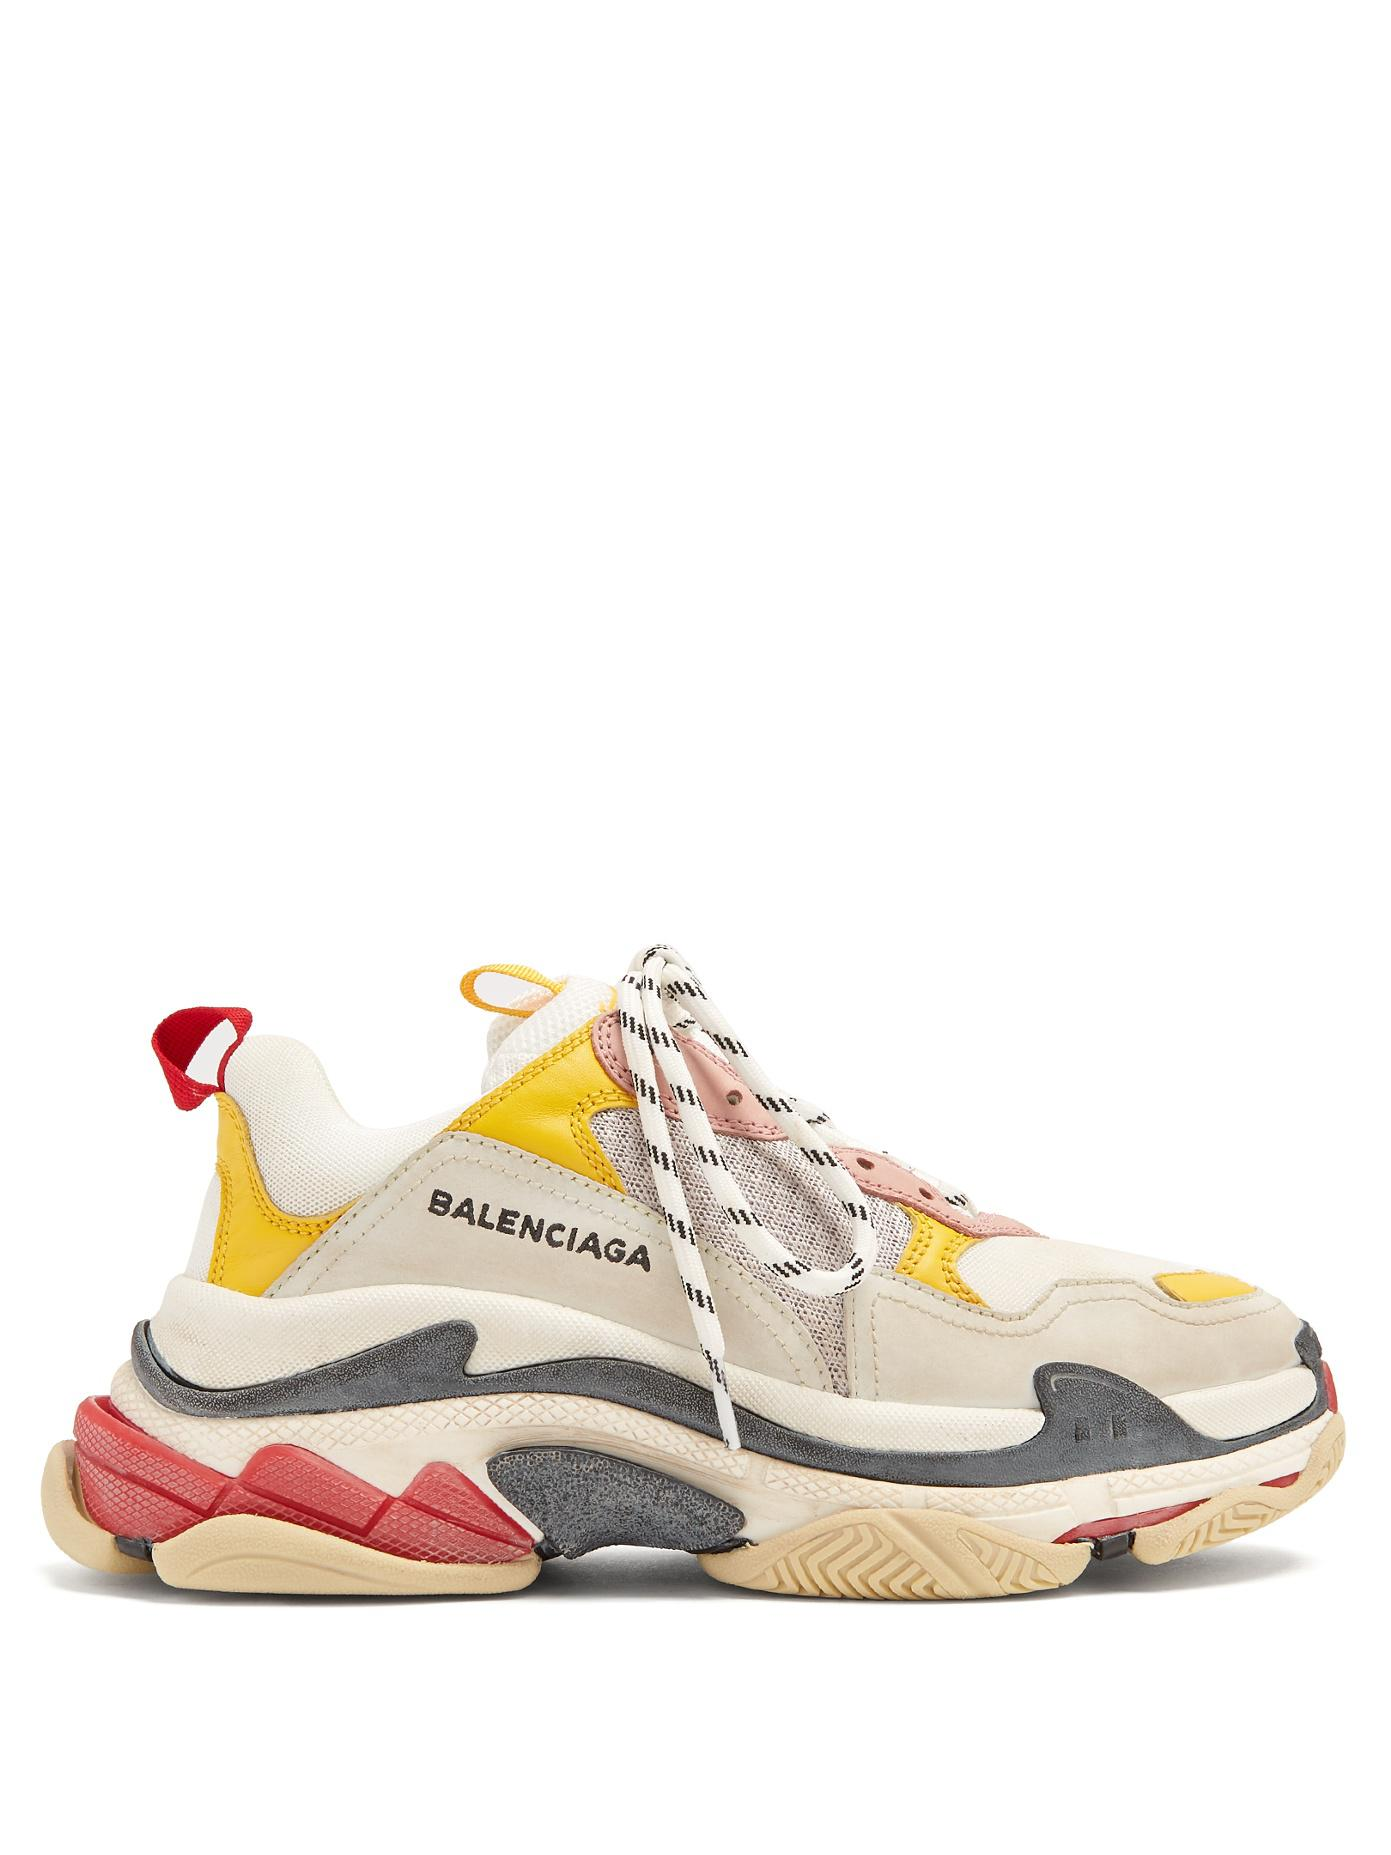 lyst balenciaga triple s low top trainers in white. Black Bedroom Furniture Sets. Home Design Ideas